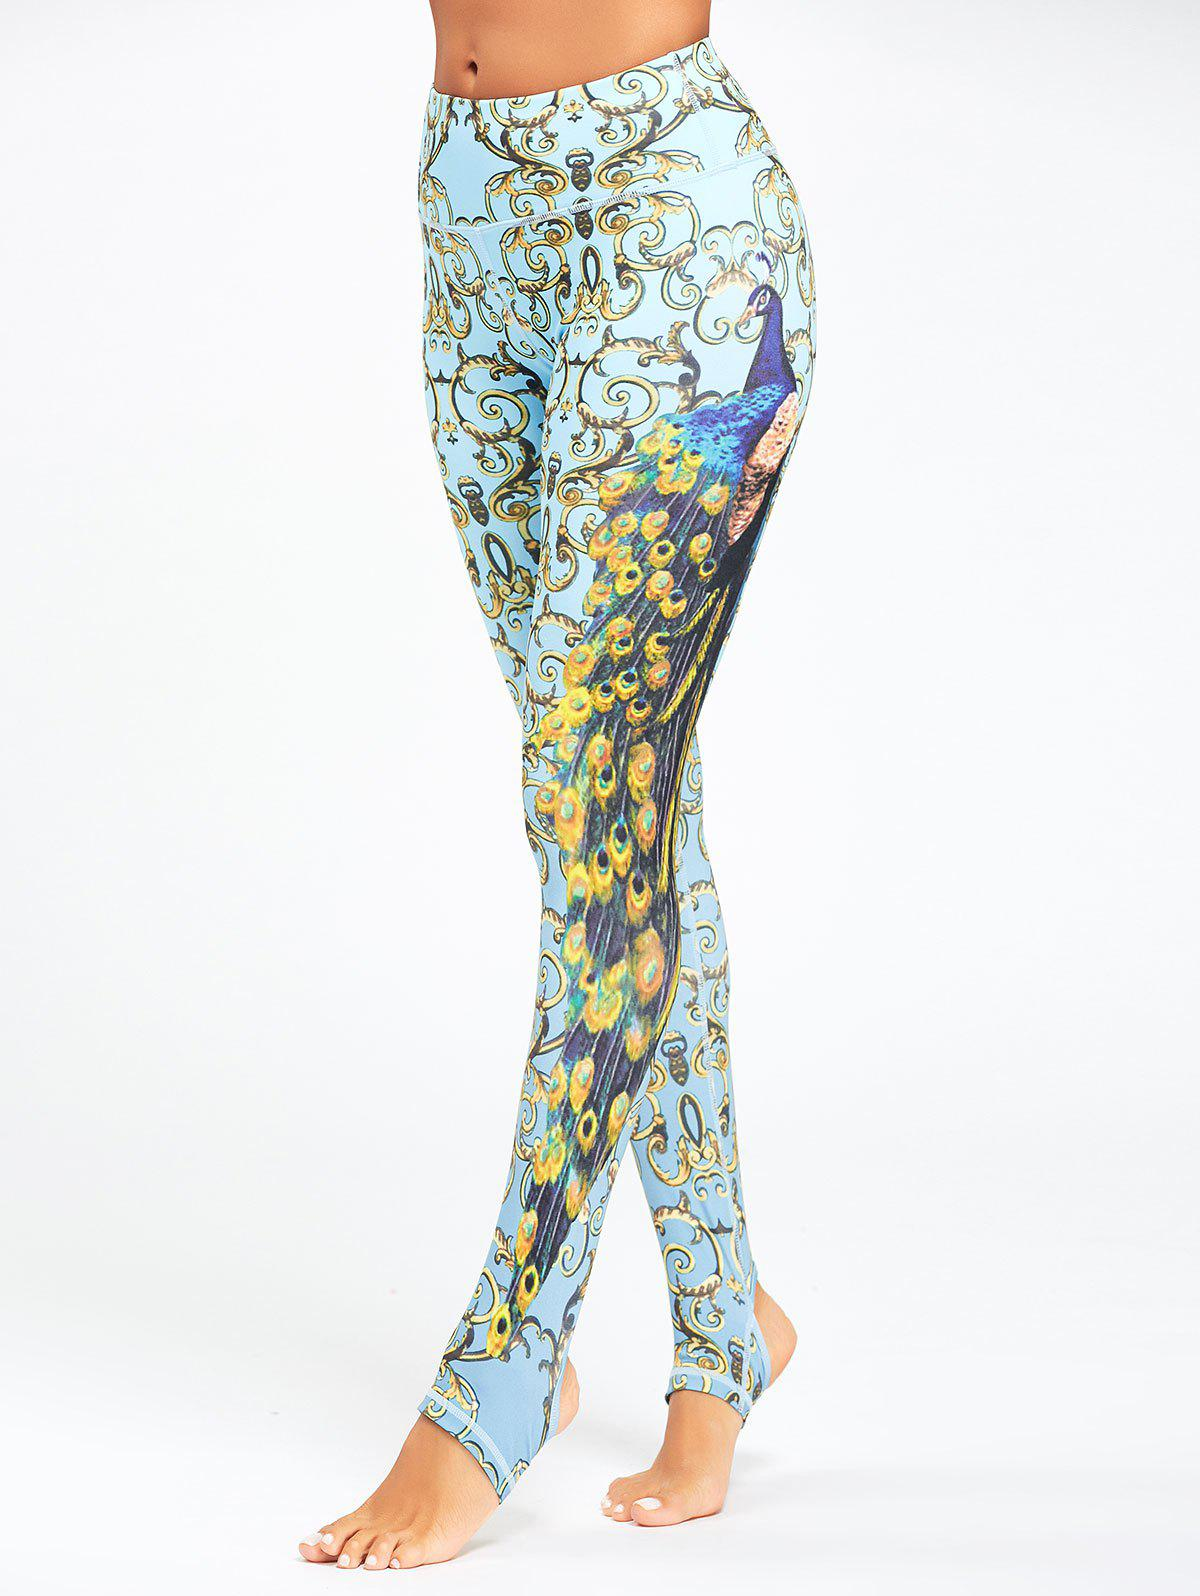 Peacock Printed Yoga Stirrup Leggings - CLOUDY M